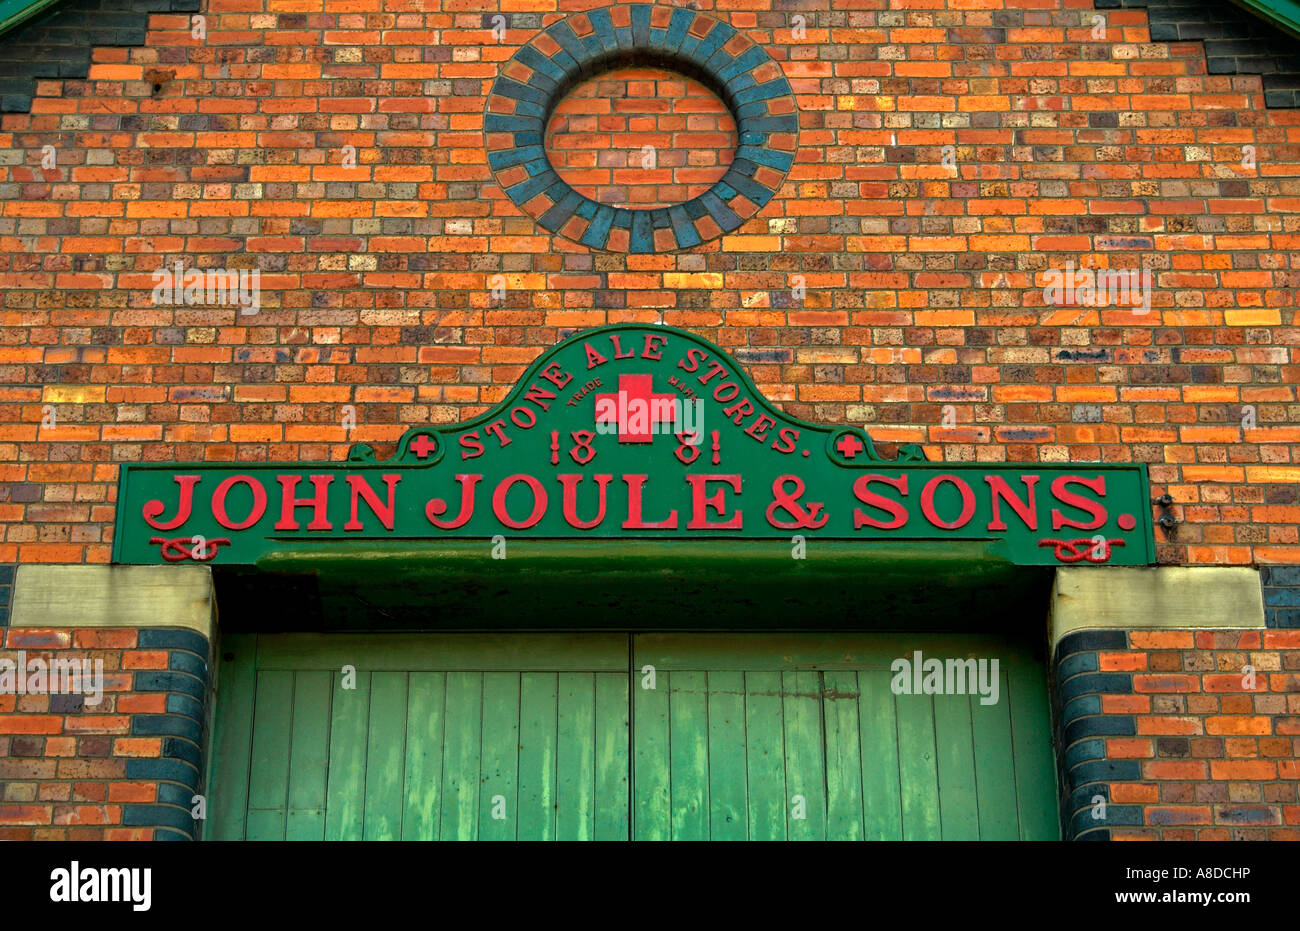 John Joule & Sons Brewery Stone Staffordshire EDITORIAL USE ONLY - Stock Image